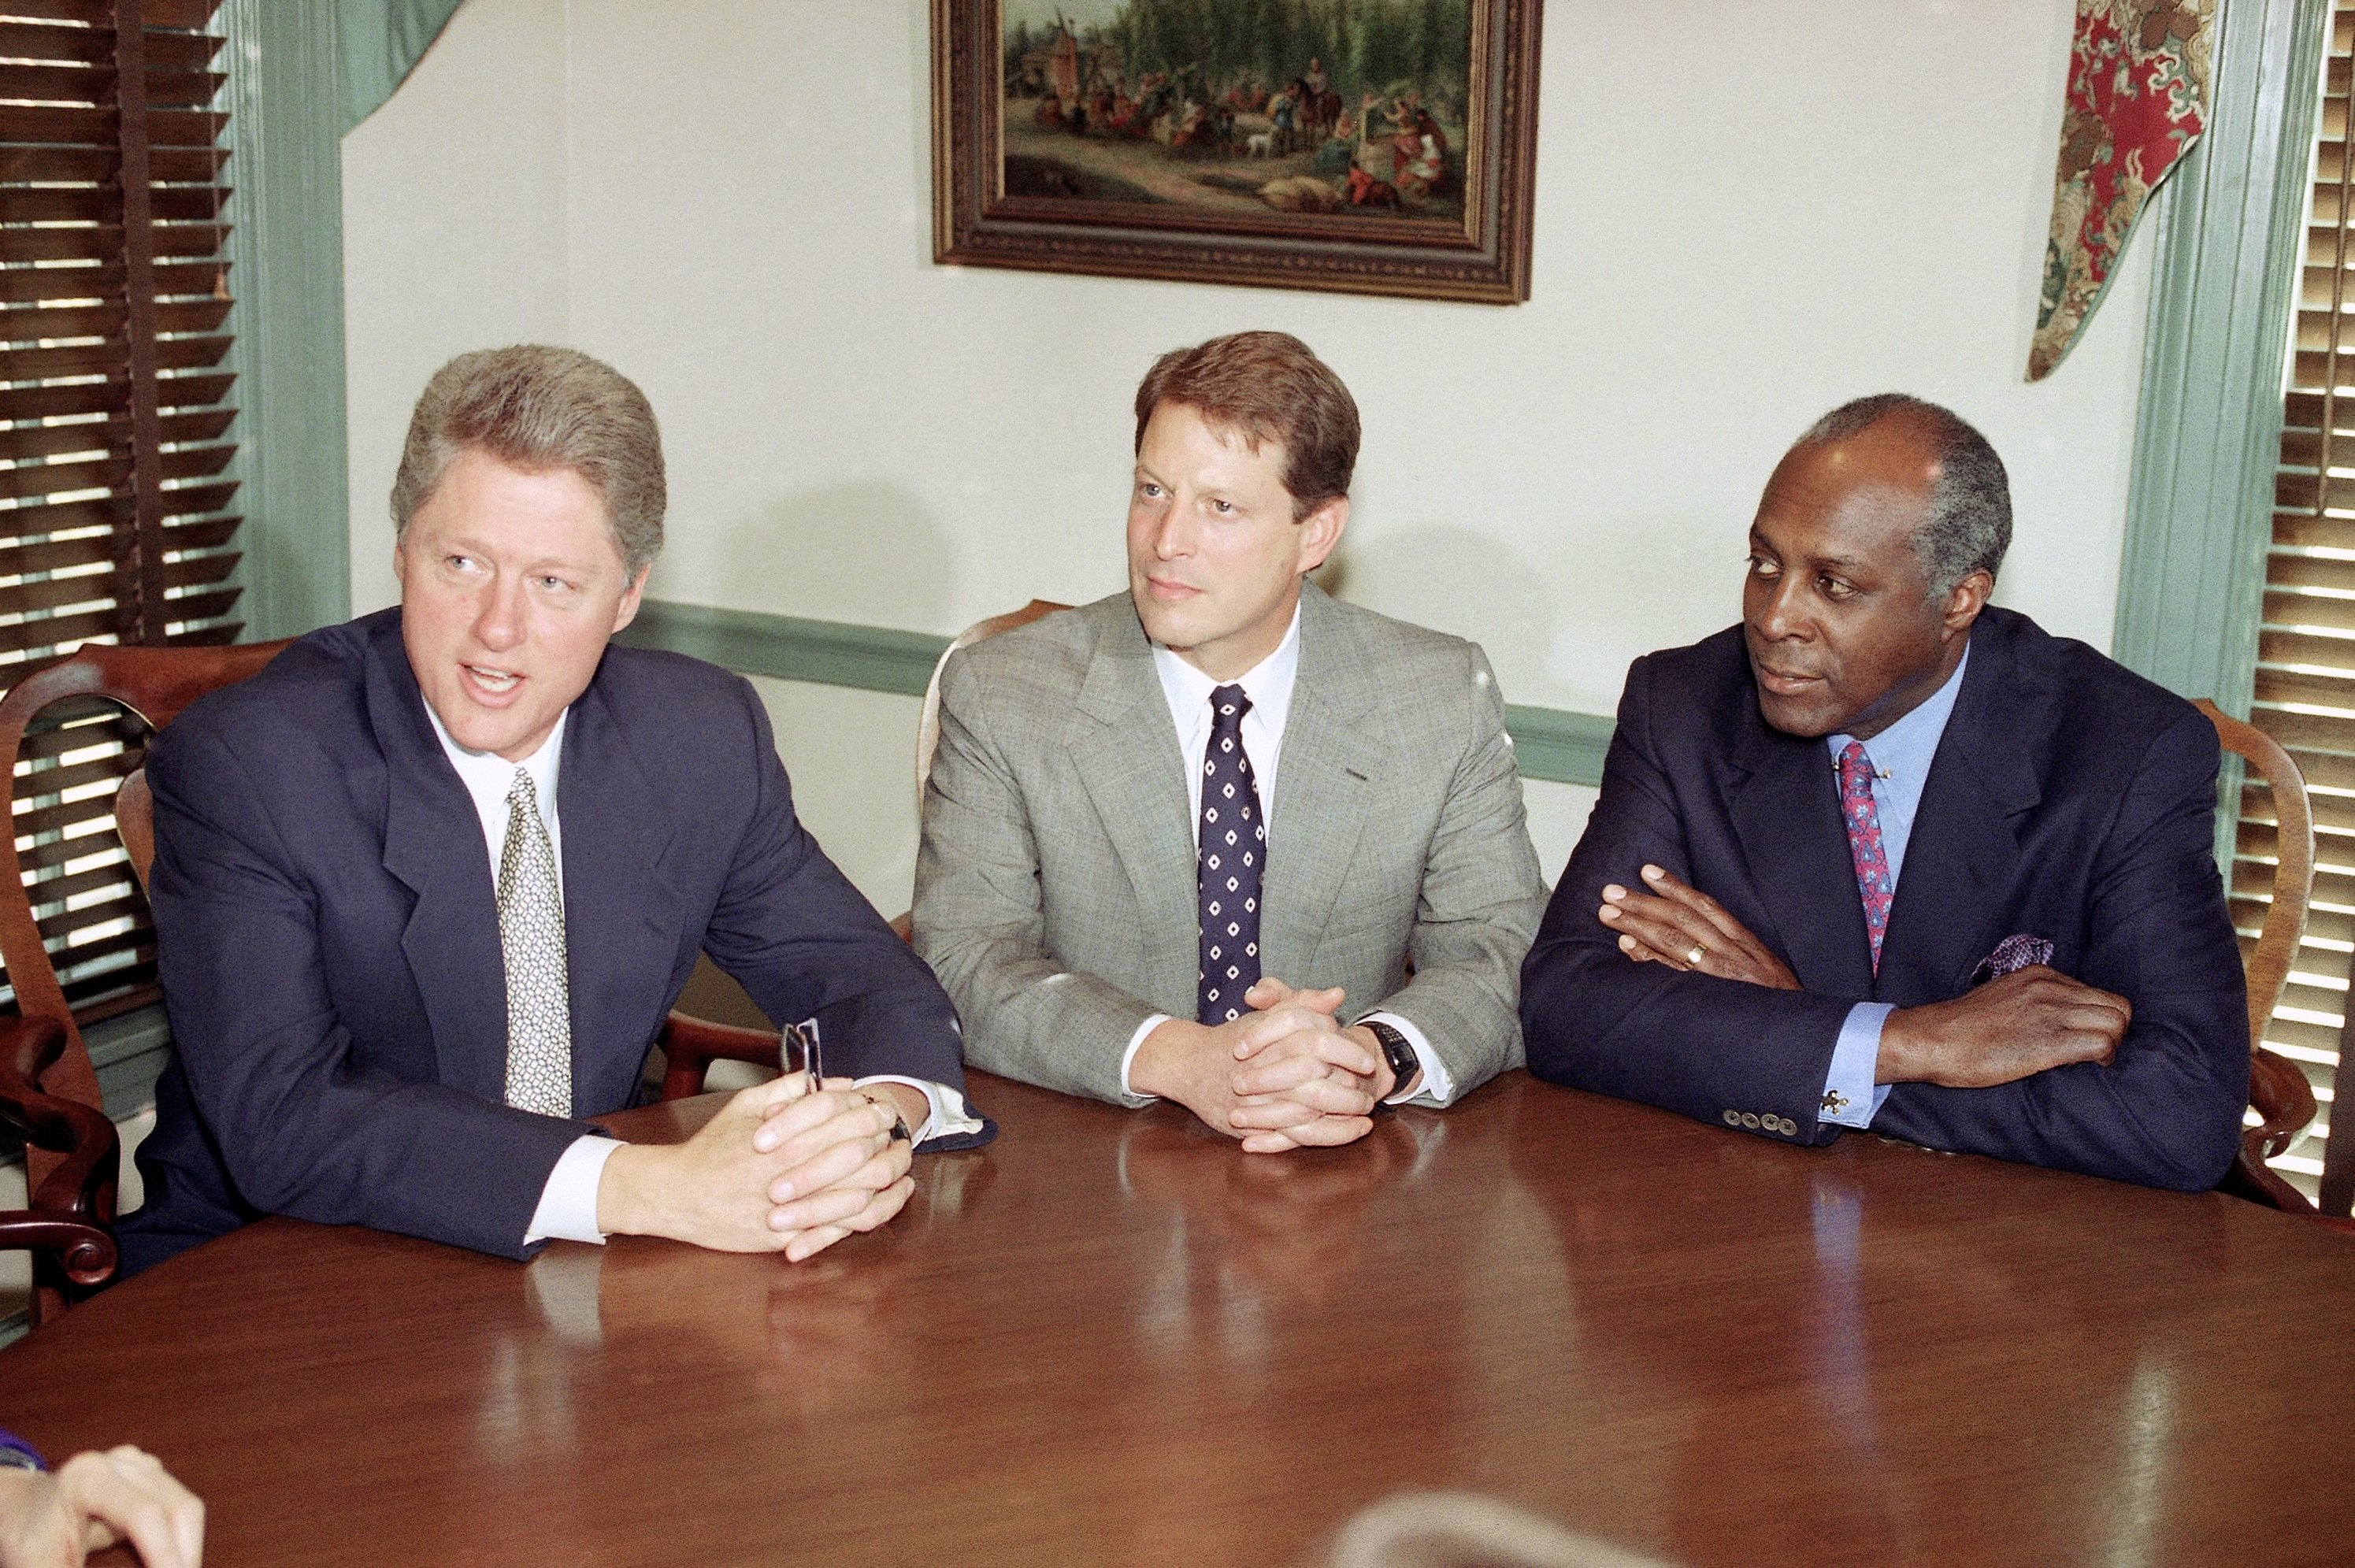 Then President-elect Bill Clinton (L) meets with Vice President-elect Al Gore and Vernon Jordan (R) at the Governor's Mansion in Little Rock, Arkansas, U.S., Nov. 18, 1993. (AP Photo)